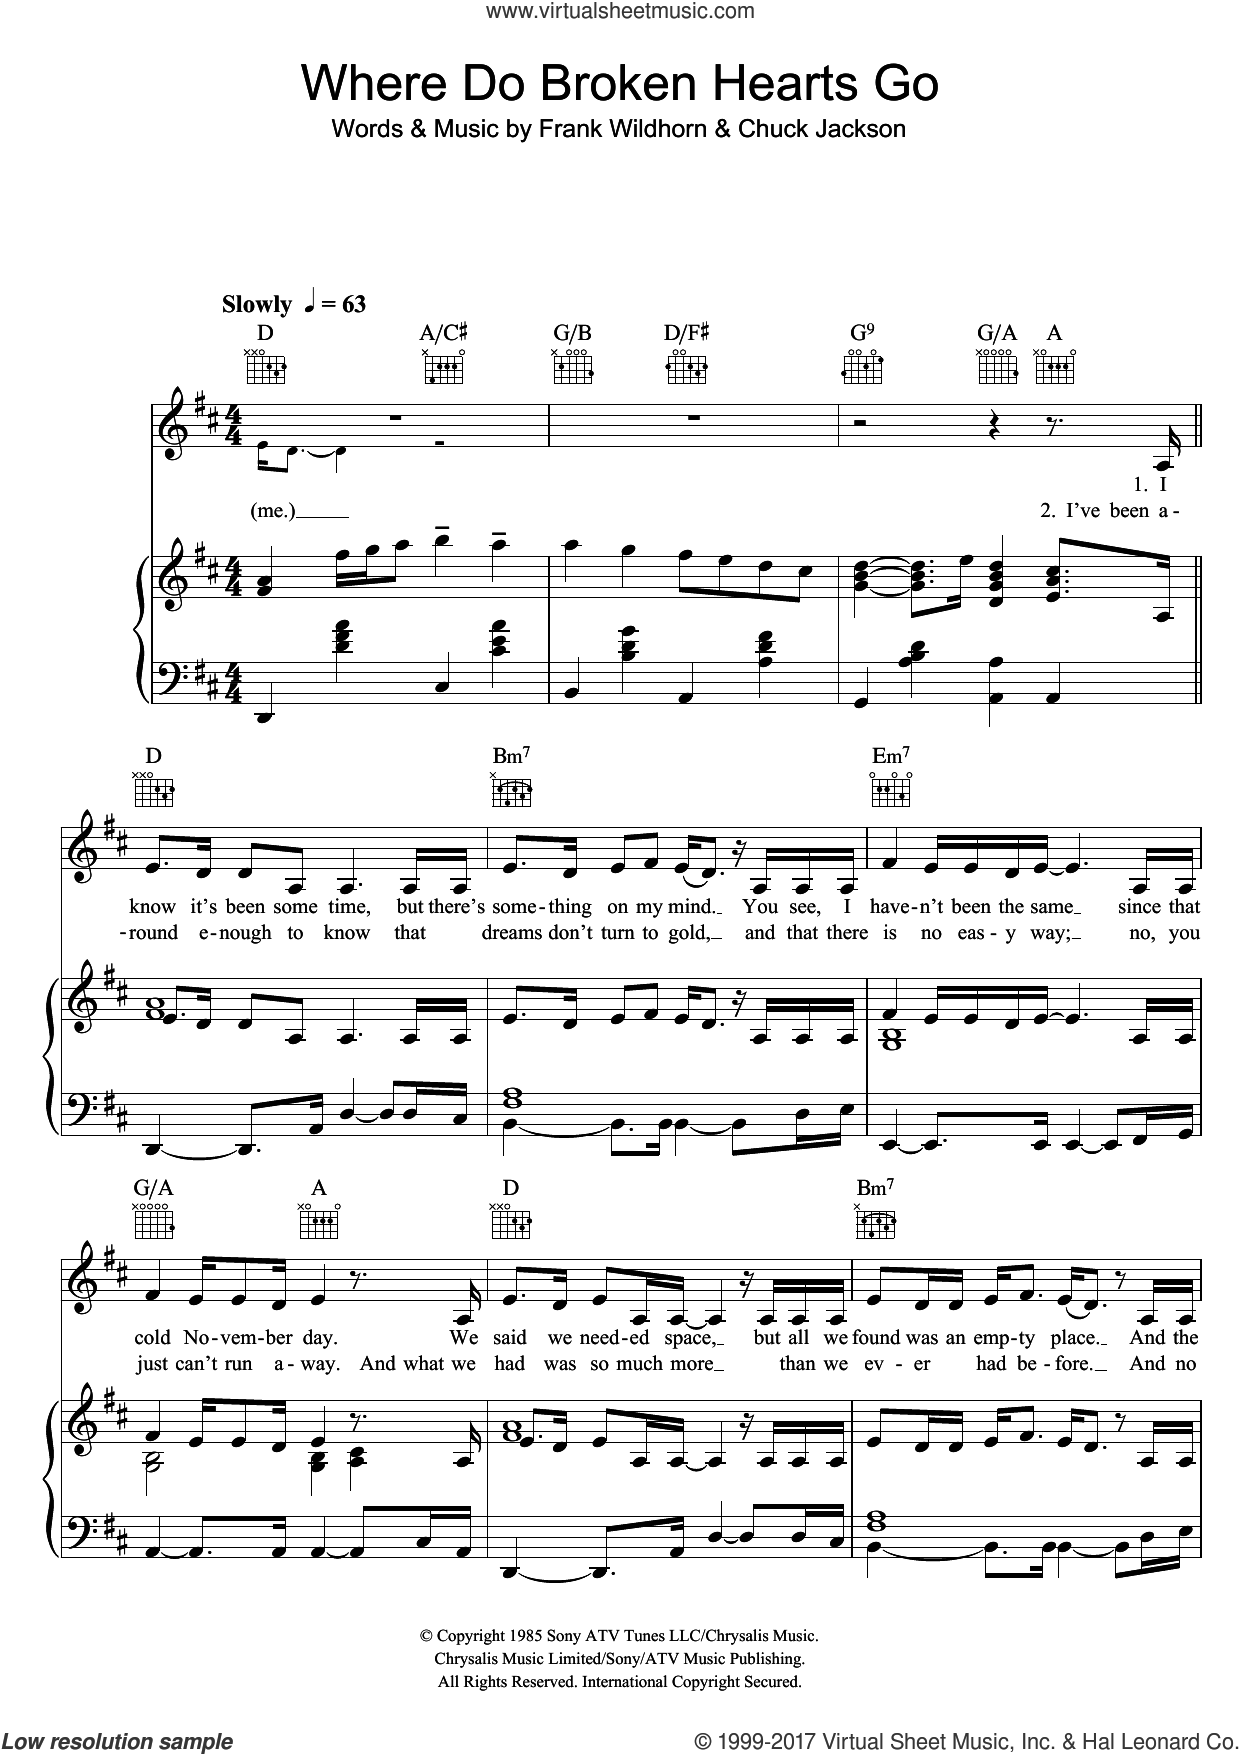 Where Do Broken Hearts Go sheet music for voice, piano or guitar by Whitney Houston, Chuck Jackson and Frank Wildhorn, intermediate skill level